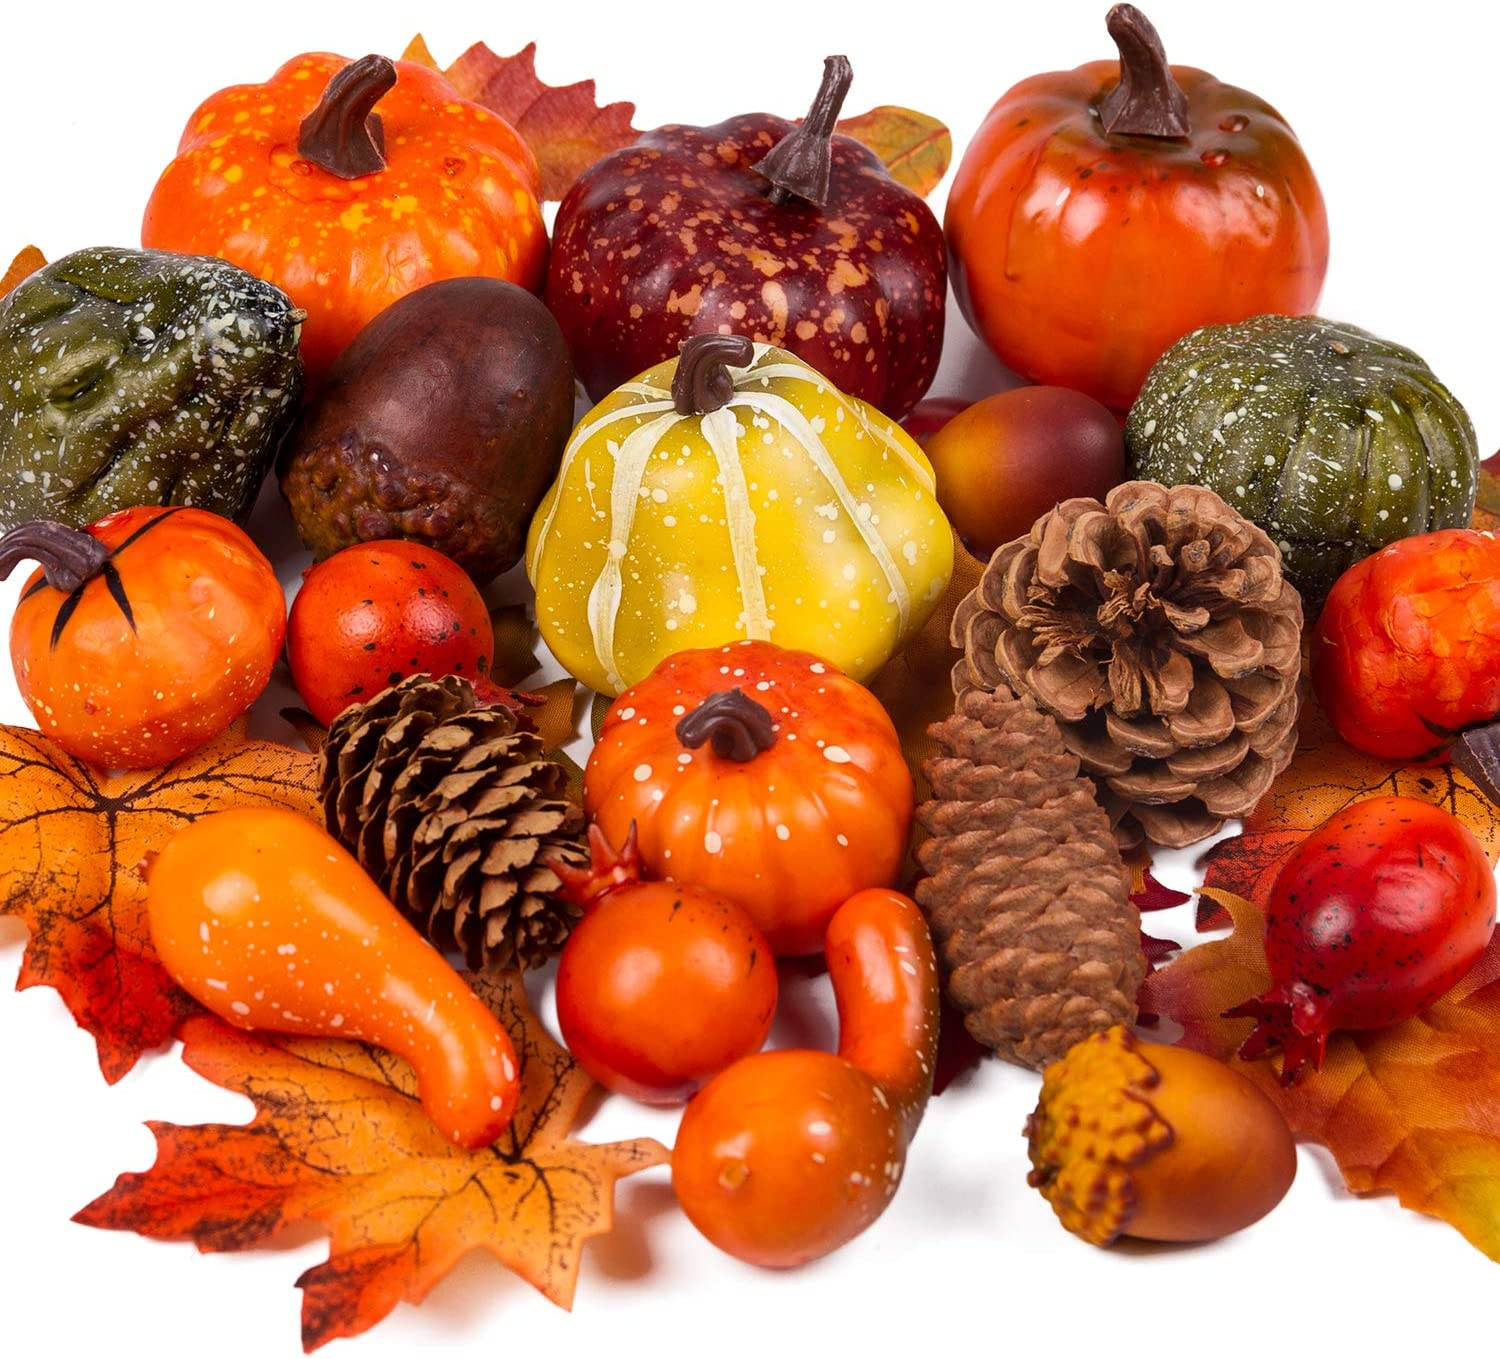 WRAPAHOLIC Decorative Lifelike Realistic Artificial Fall Decor - Fake Pumkins, Lifelike Maple Leaves, Artificial Pine Cones and Acorns for Halloween Thanksgiving Autumn Ornaments